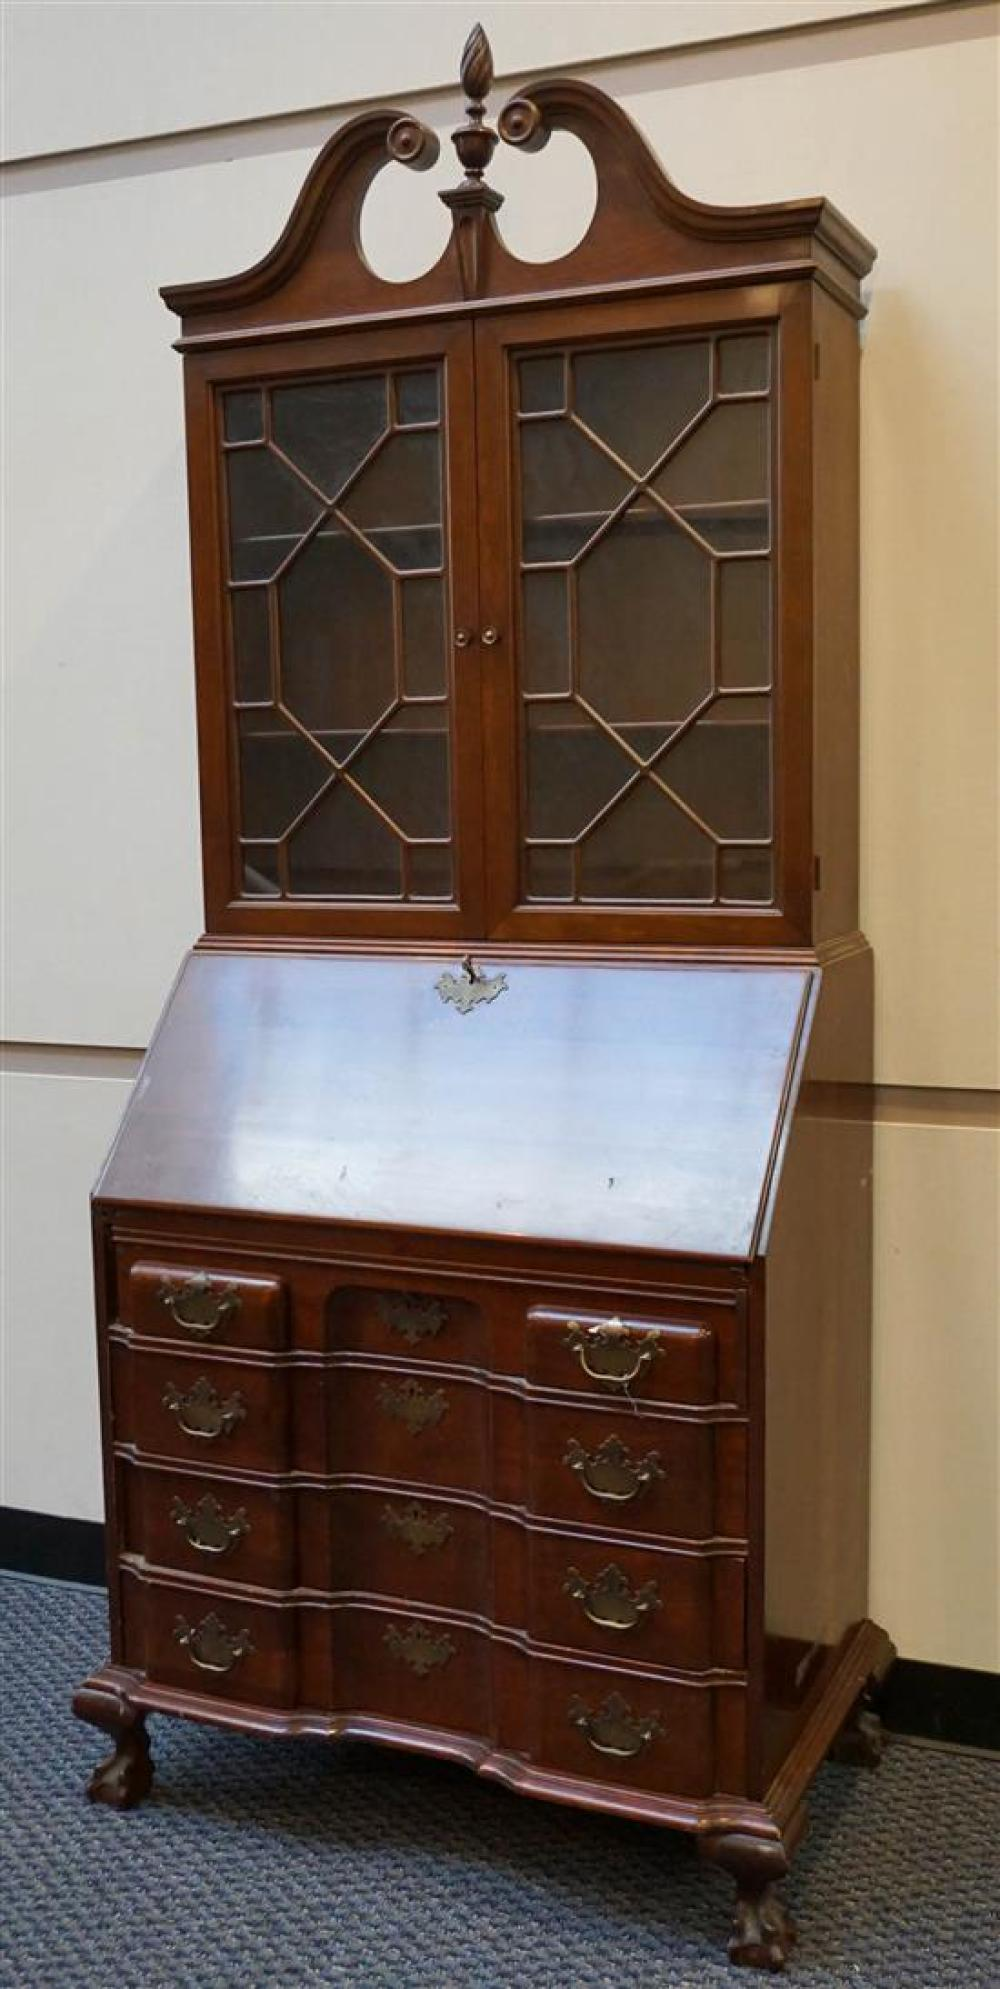 Monitor Chippendale Style Cherry Block-Front Secretary Bookcase, H: 84 in, W: 33 in